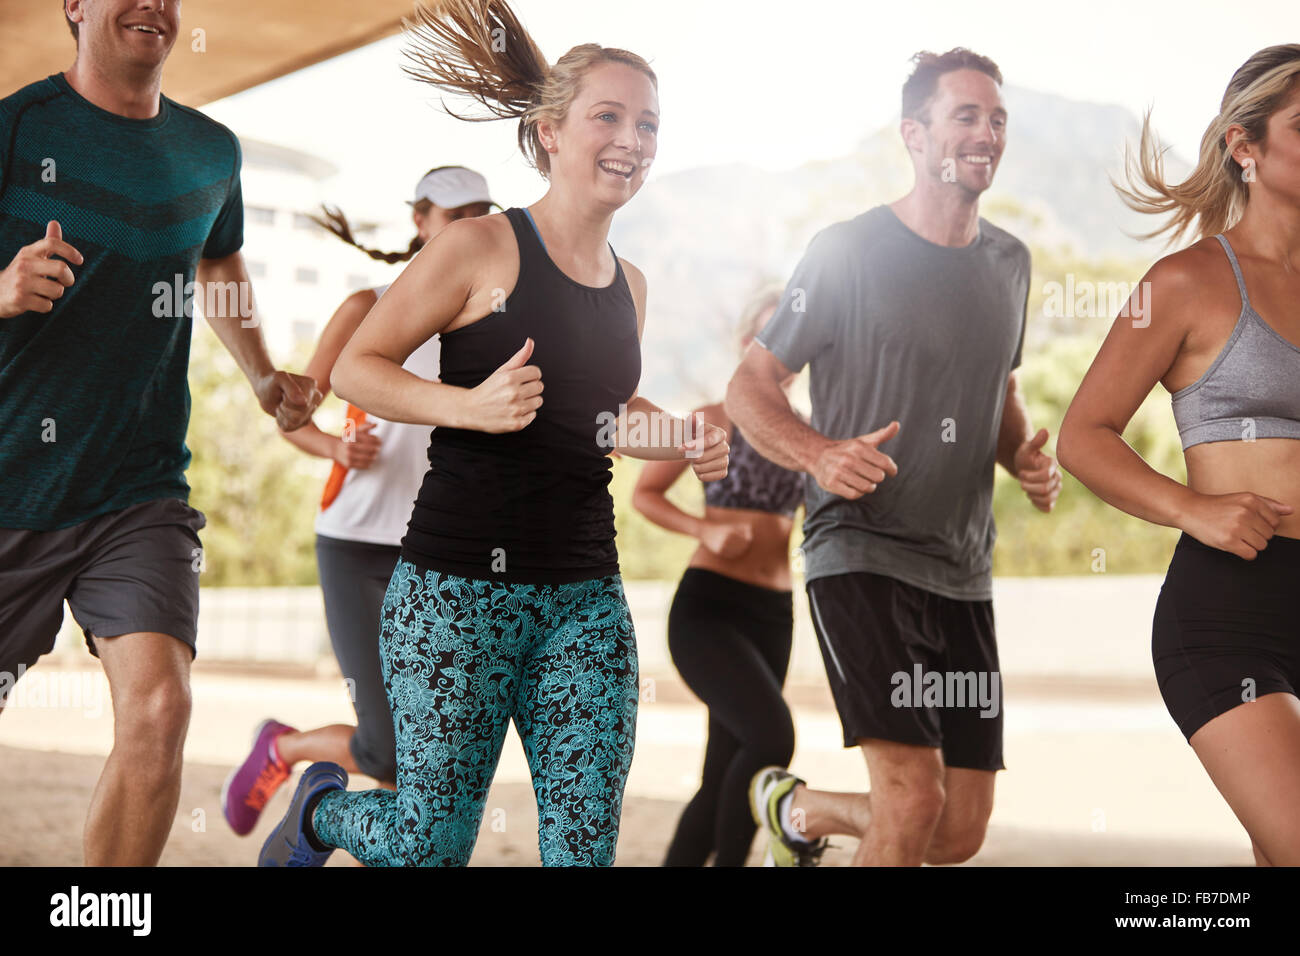 Group of happy young friends running together. Running club members exercising. - Stock Image